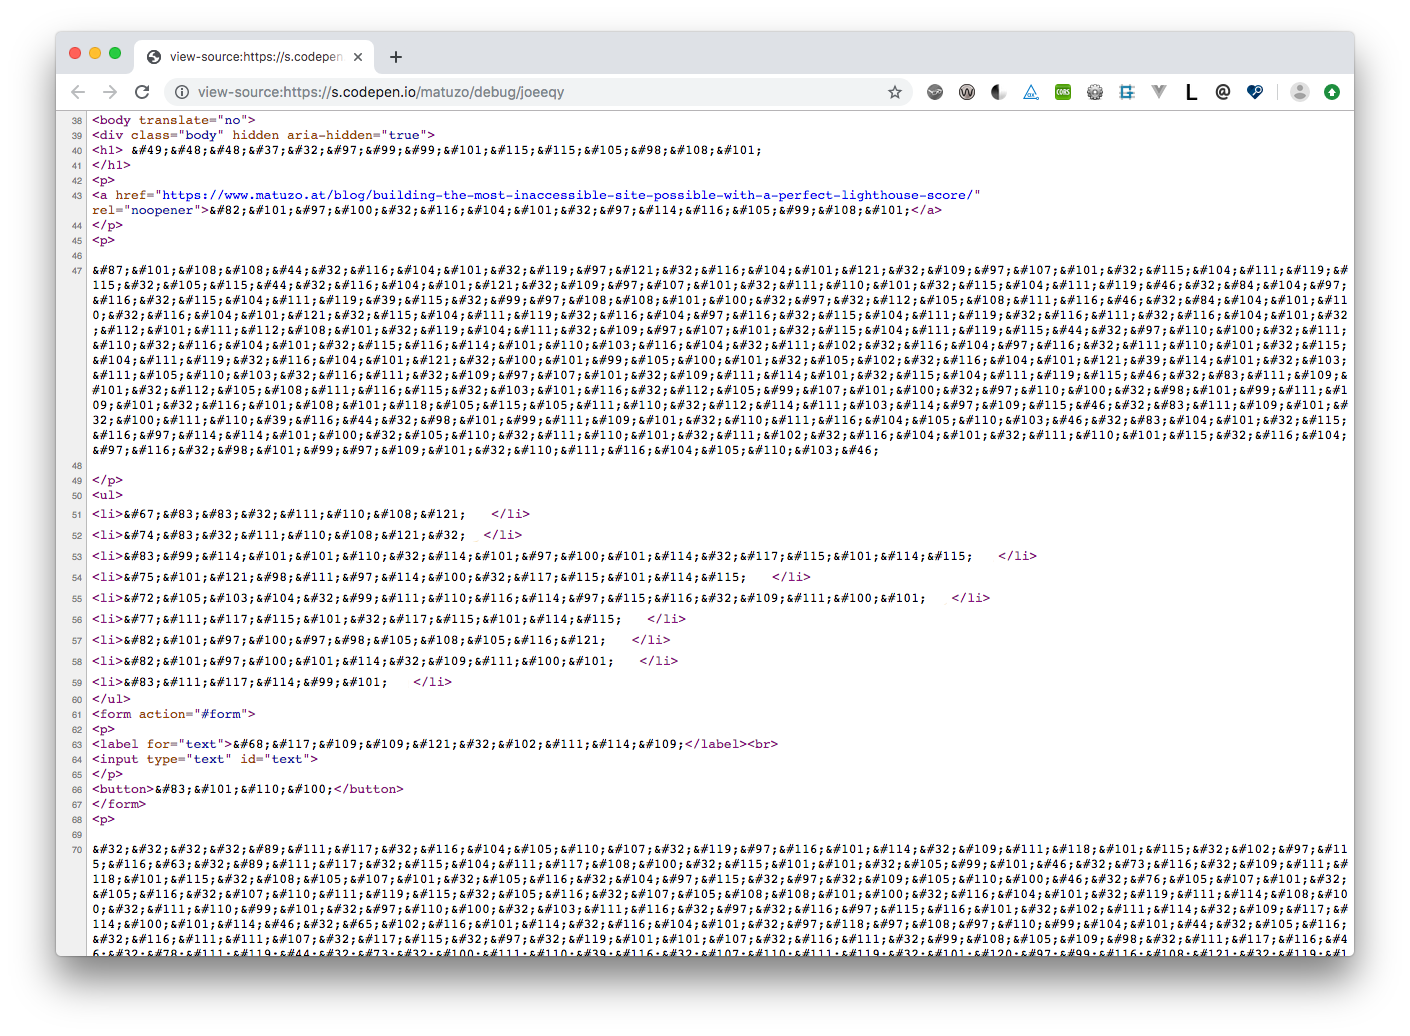 Text is not readable when viewing the source because it's written in HTML entities